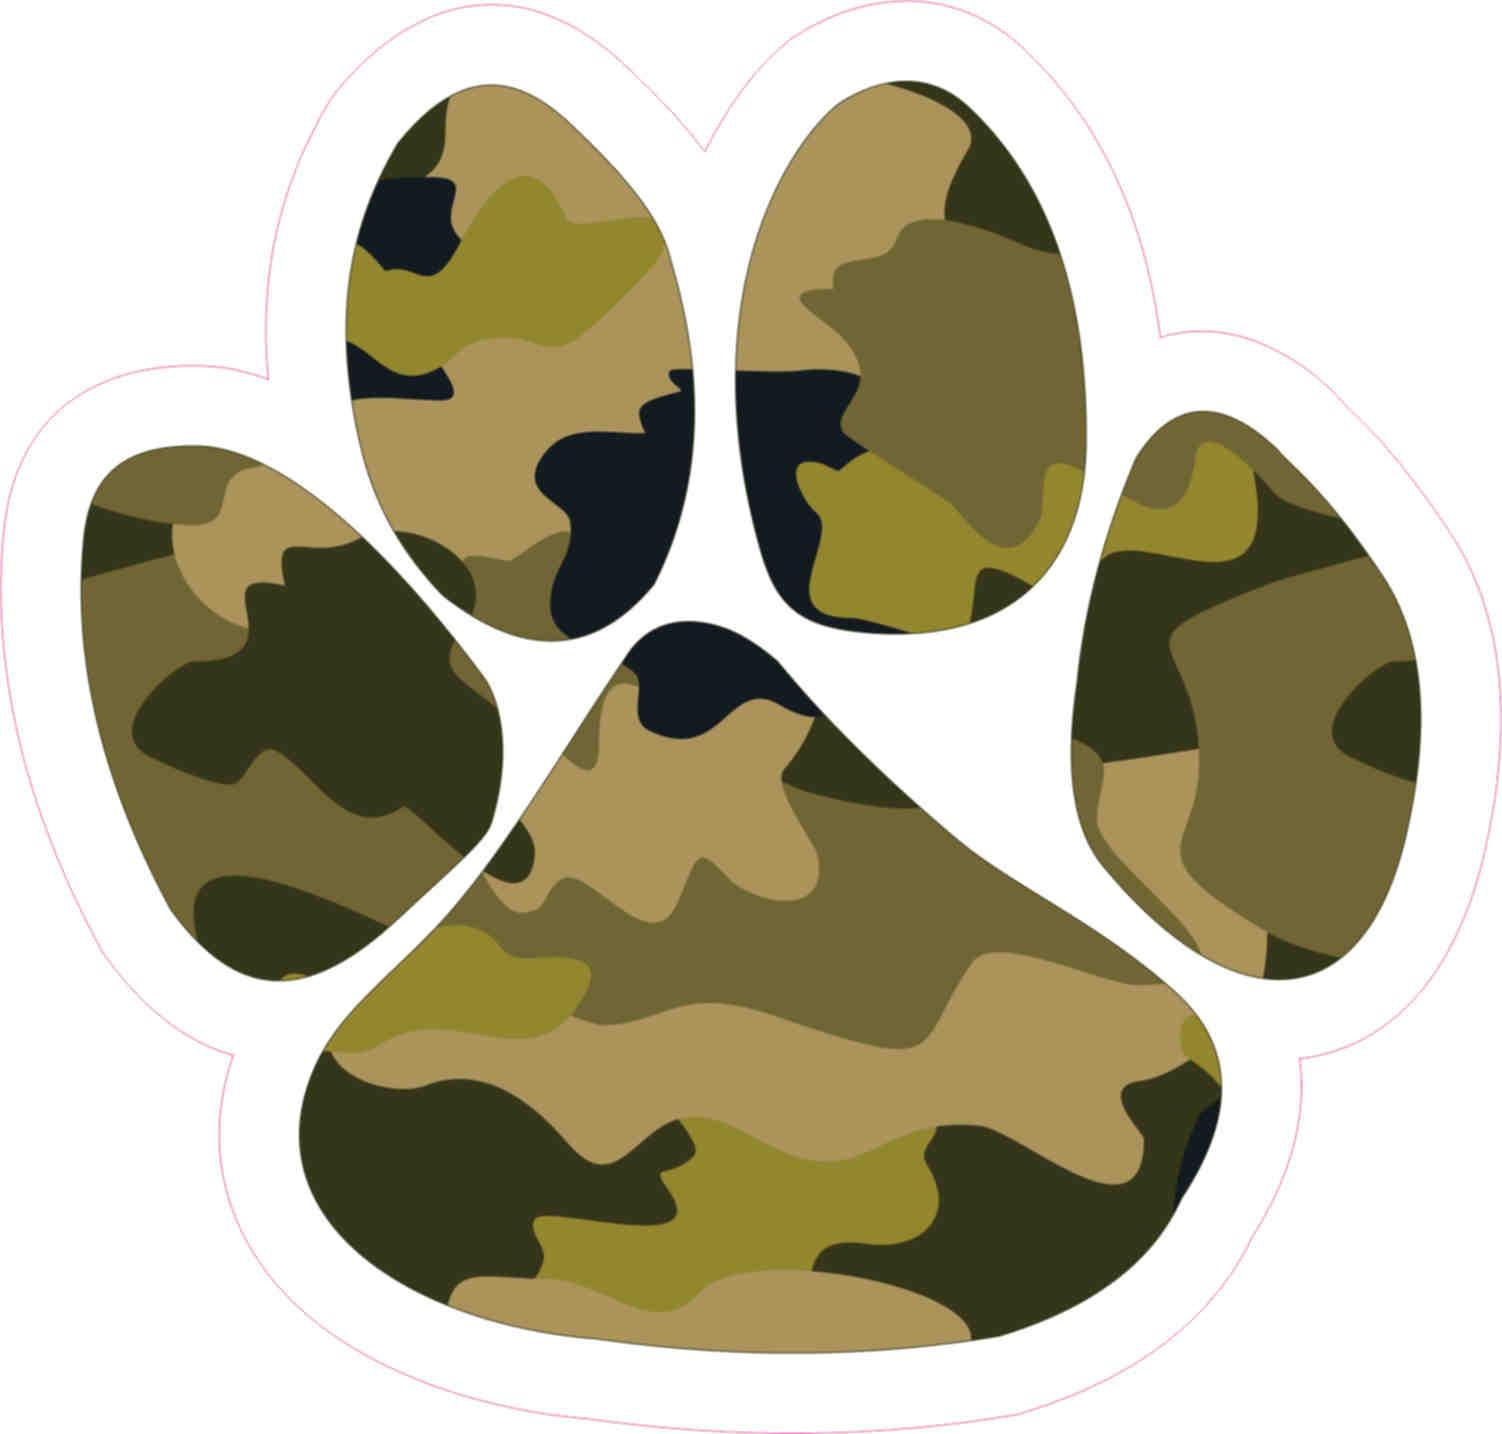 4 75in x 5in camouflage paw print bumper sticker vinyl vehicle stickers